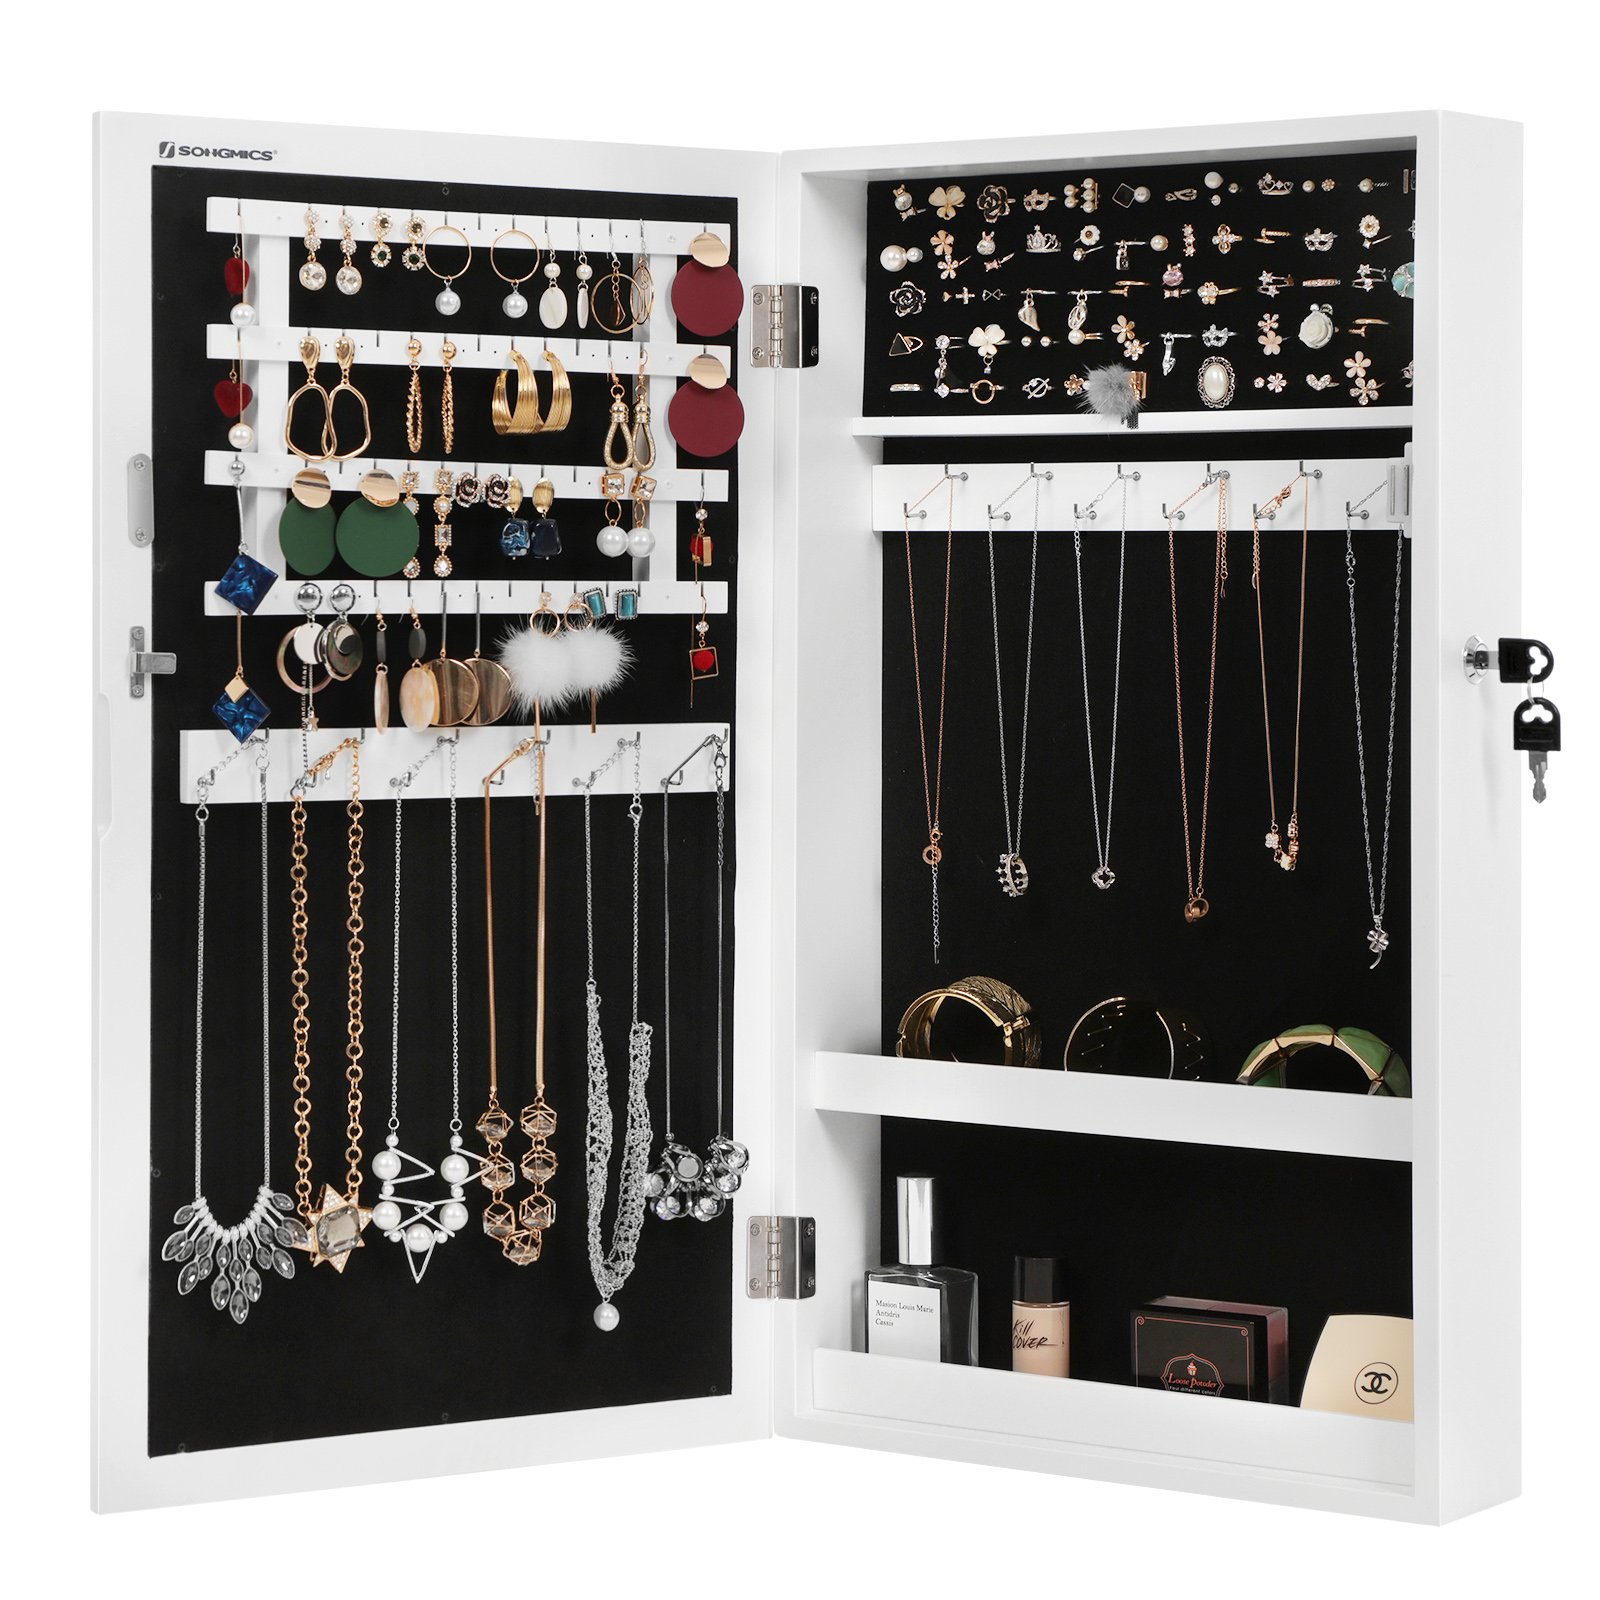 SONGMICS Lockable Jewelry Cabinet Armoire with Mirror, Wall-Mounted Space Saving Jewelry Storage Organizer White UJJC51WT by SONGMICS (Image #9)